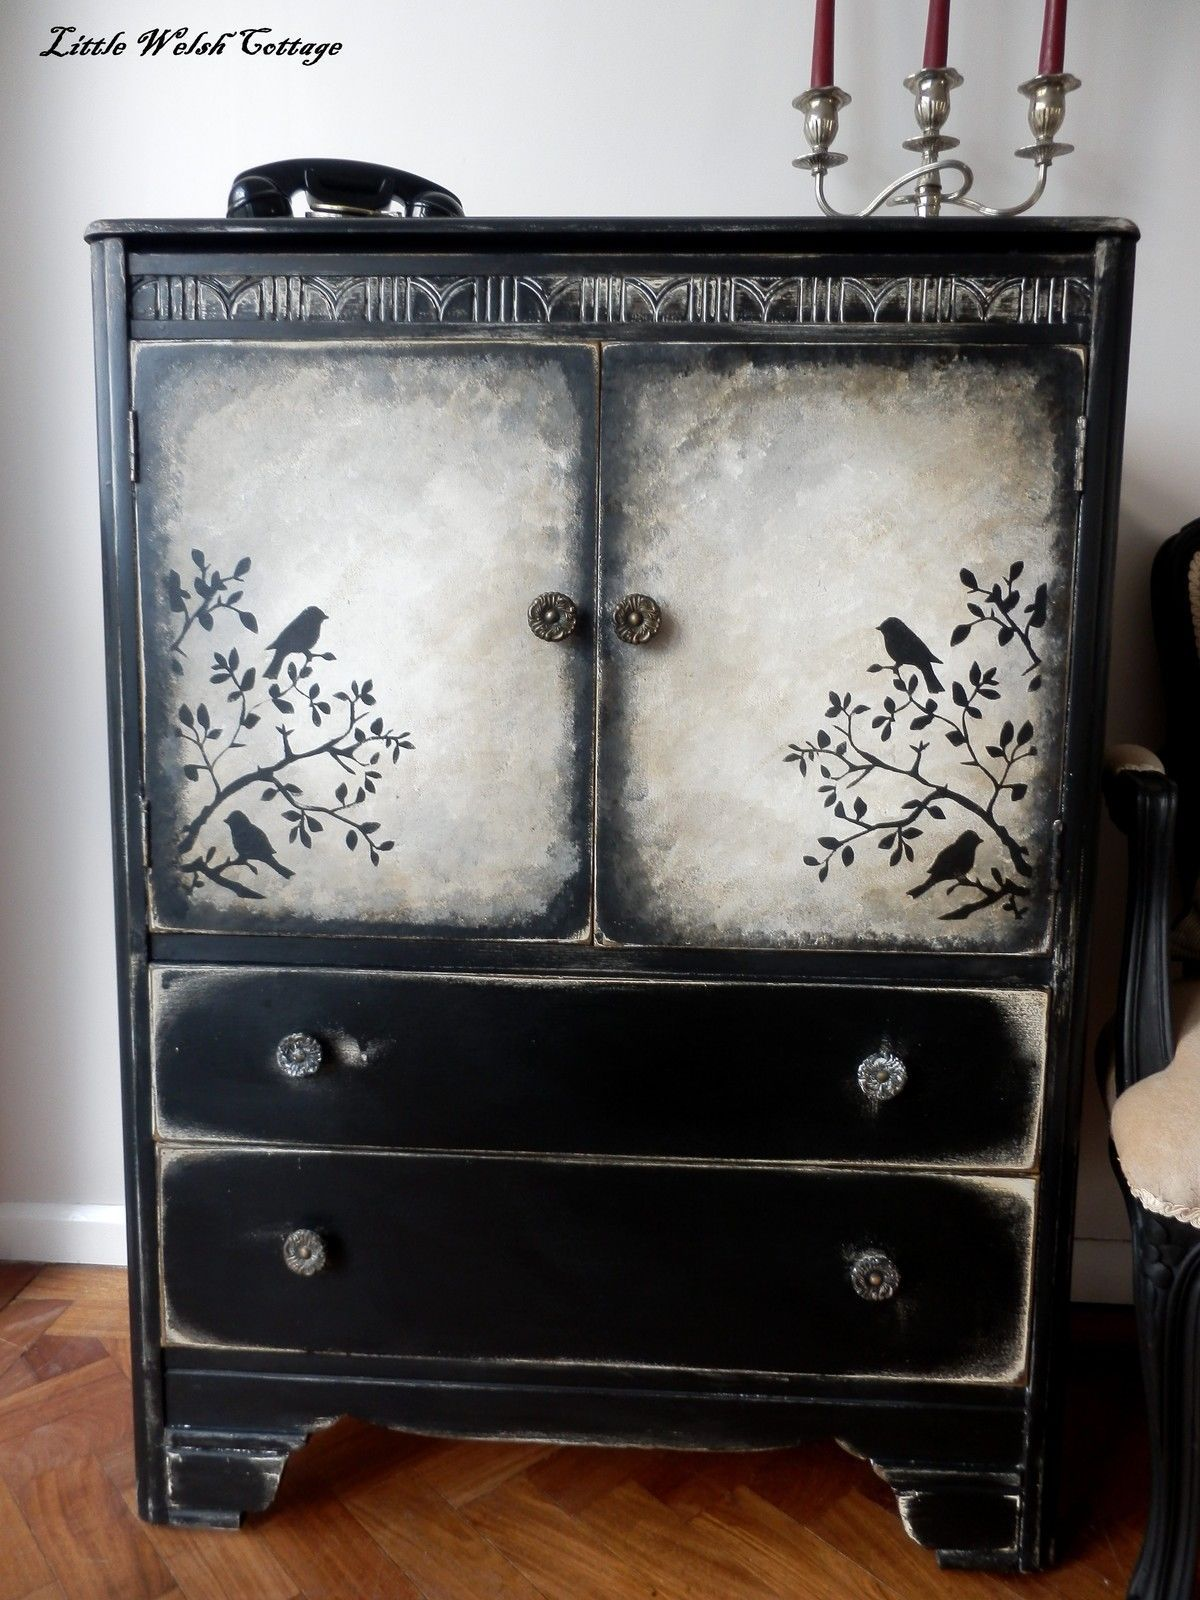 Hand Painted Cabinet Painted Furniture Refurbished Furniture Paint Furniture